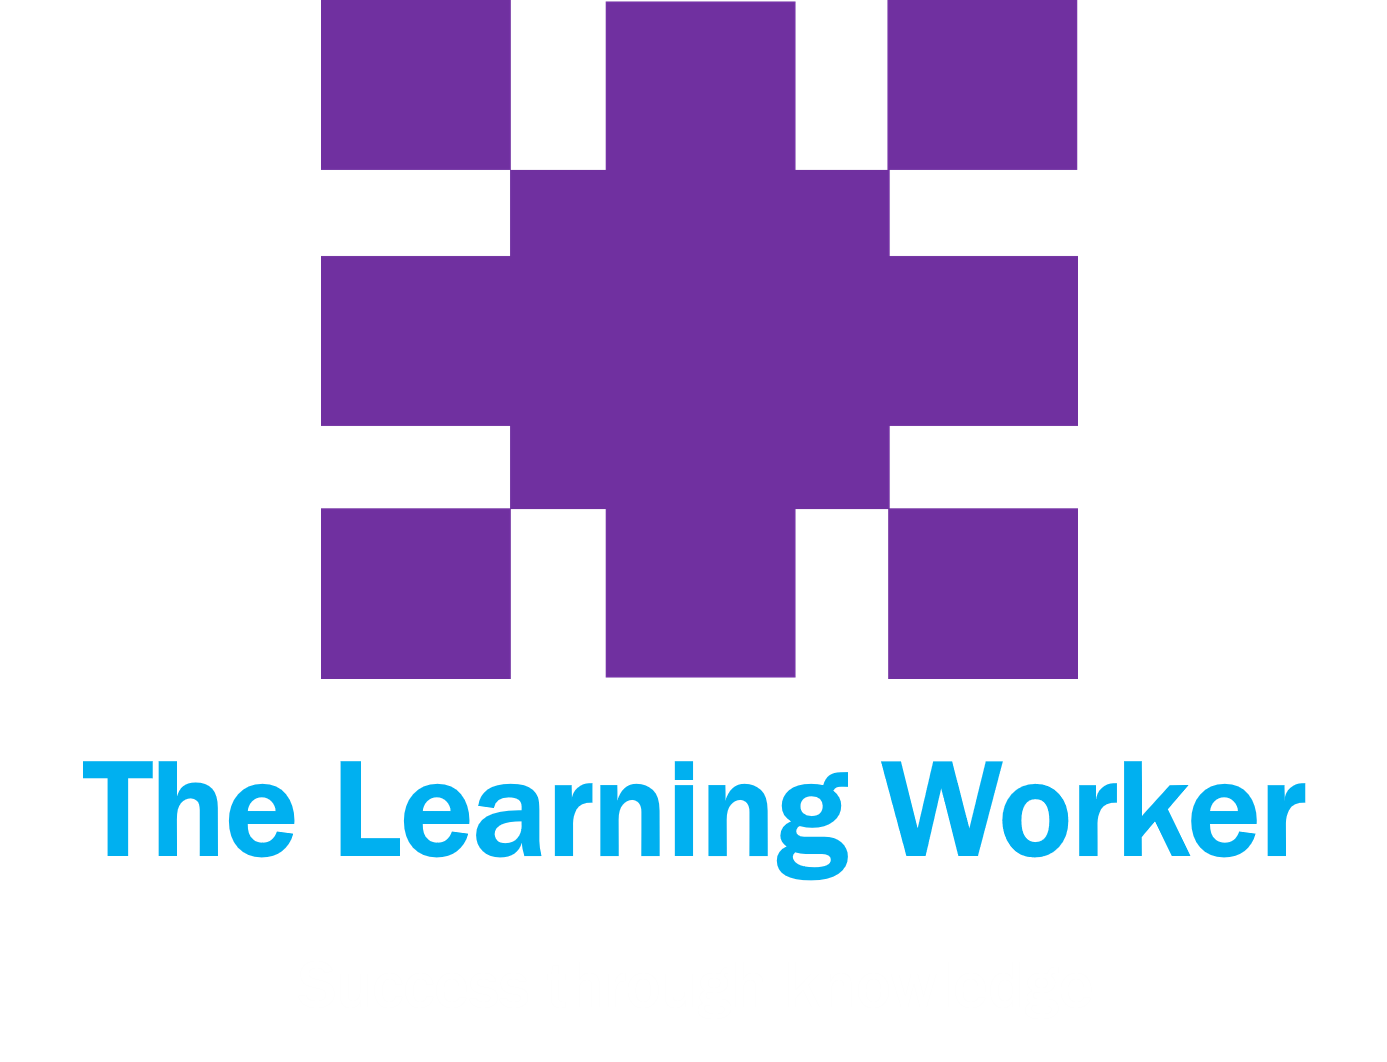 The Learning Worker